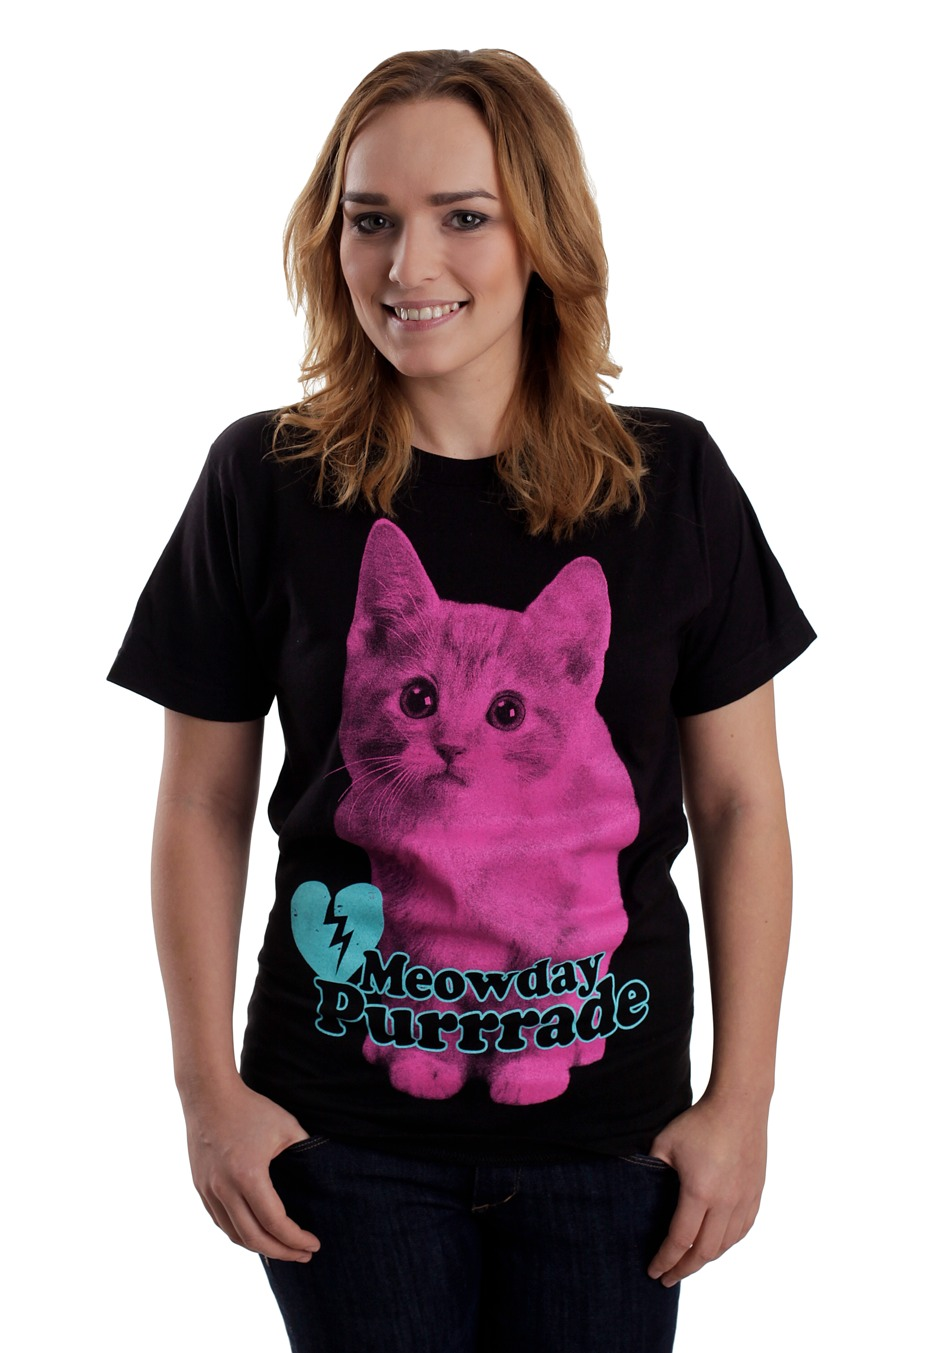 mayday parade meowday purrrade t shirt official emo